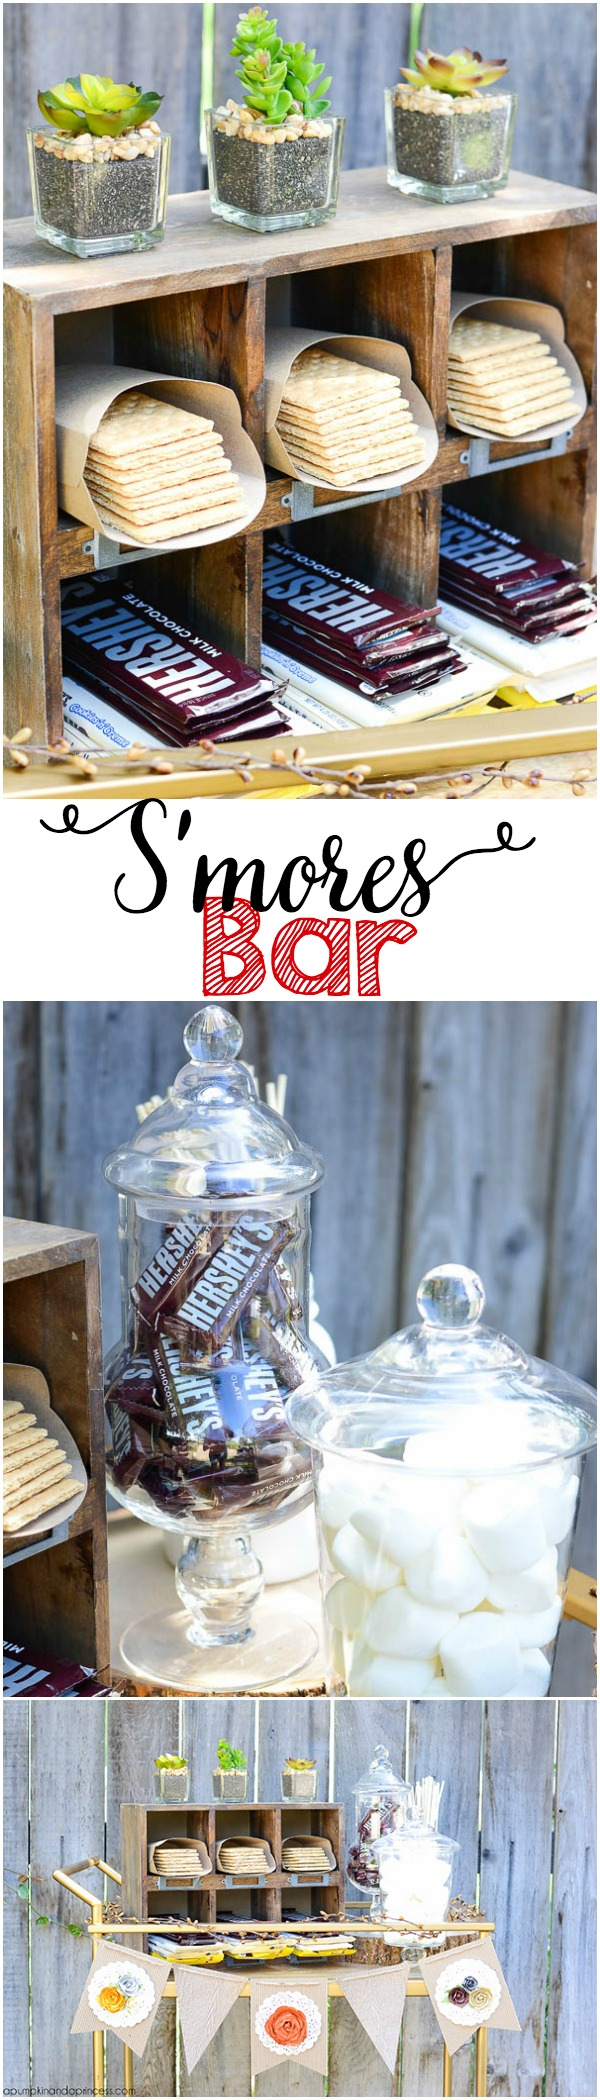 S'mores Bar - Summer Party